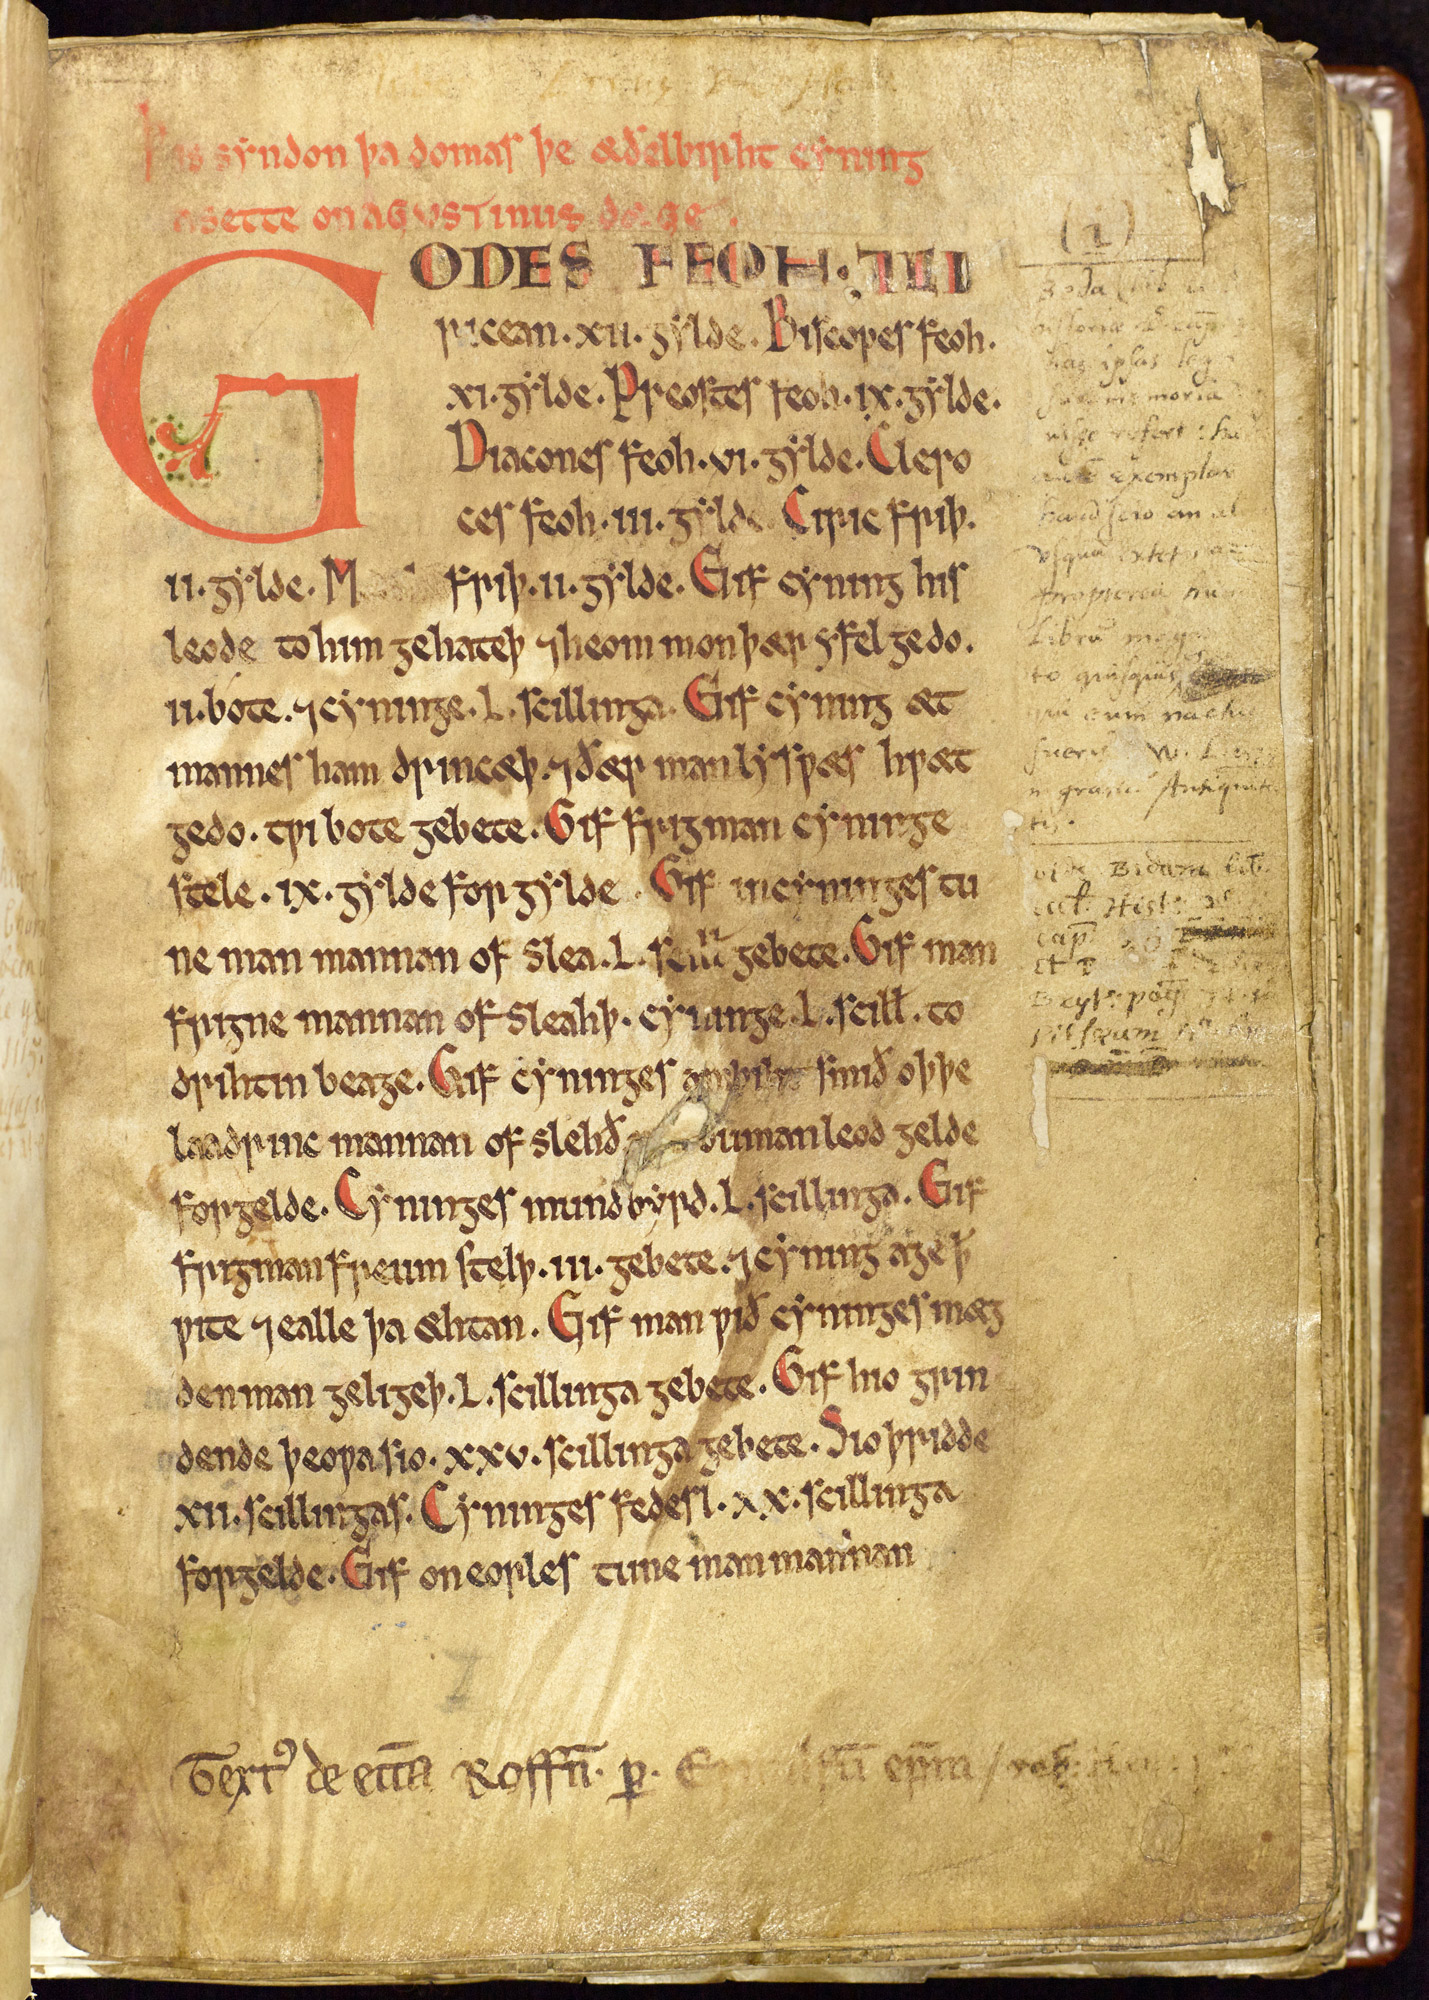 The laws of Æthelberht represent the oldest text we have in Old English